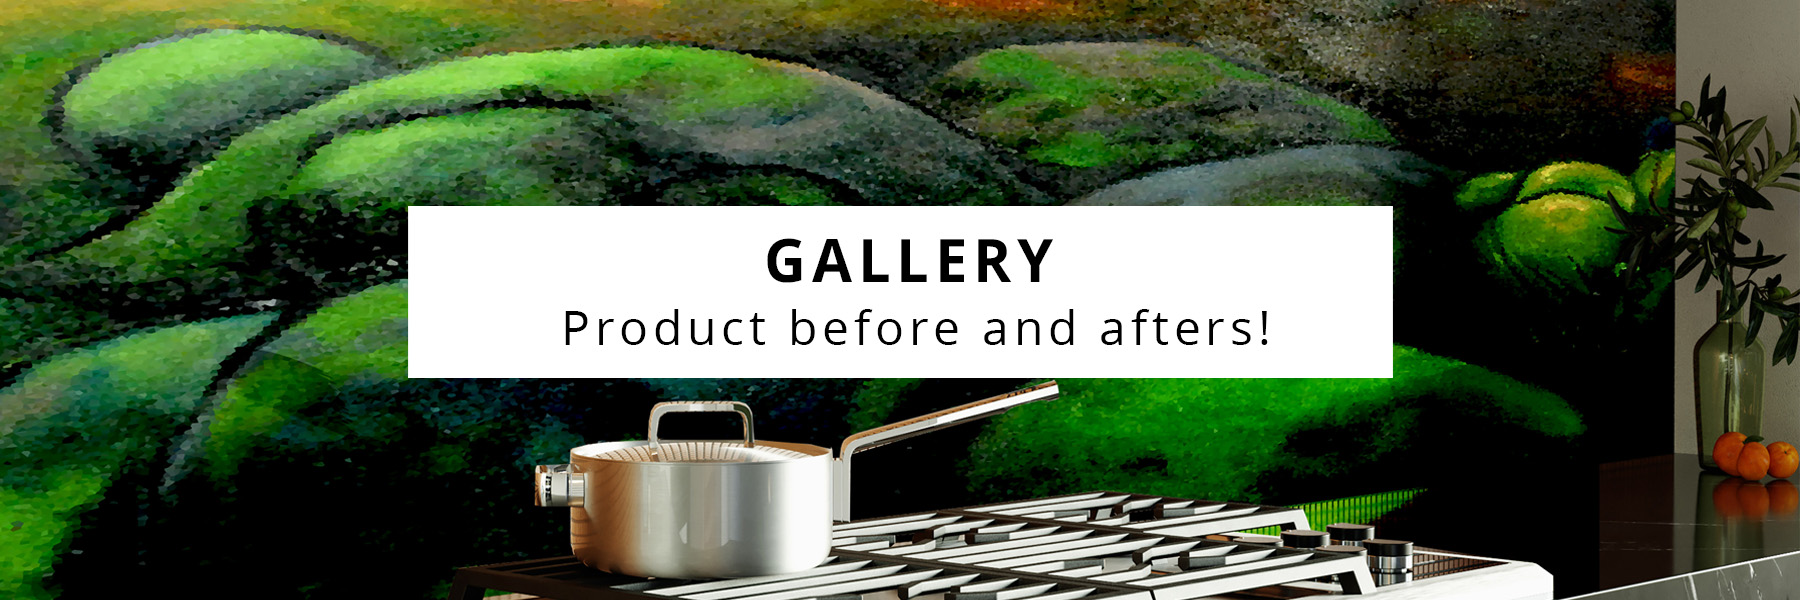 before_and_after_Gallery_of_Decorative_Building_Products_by_Sharron_Tancred_The_Mural_Shop